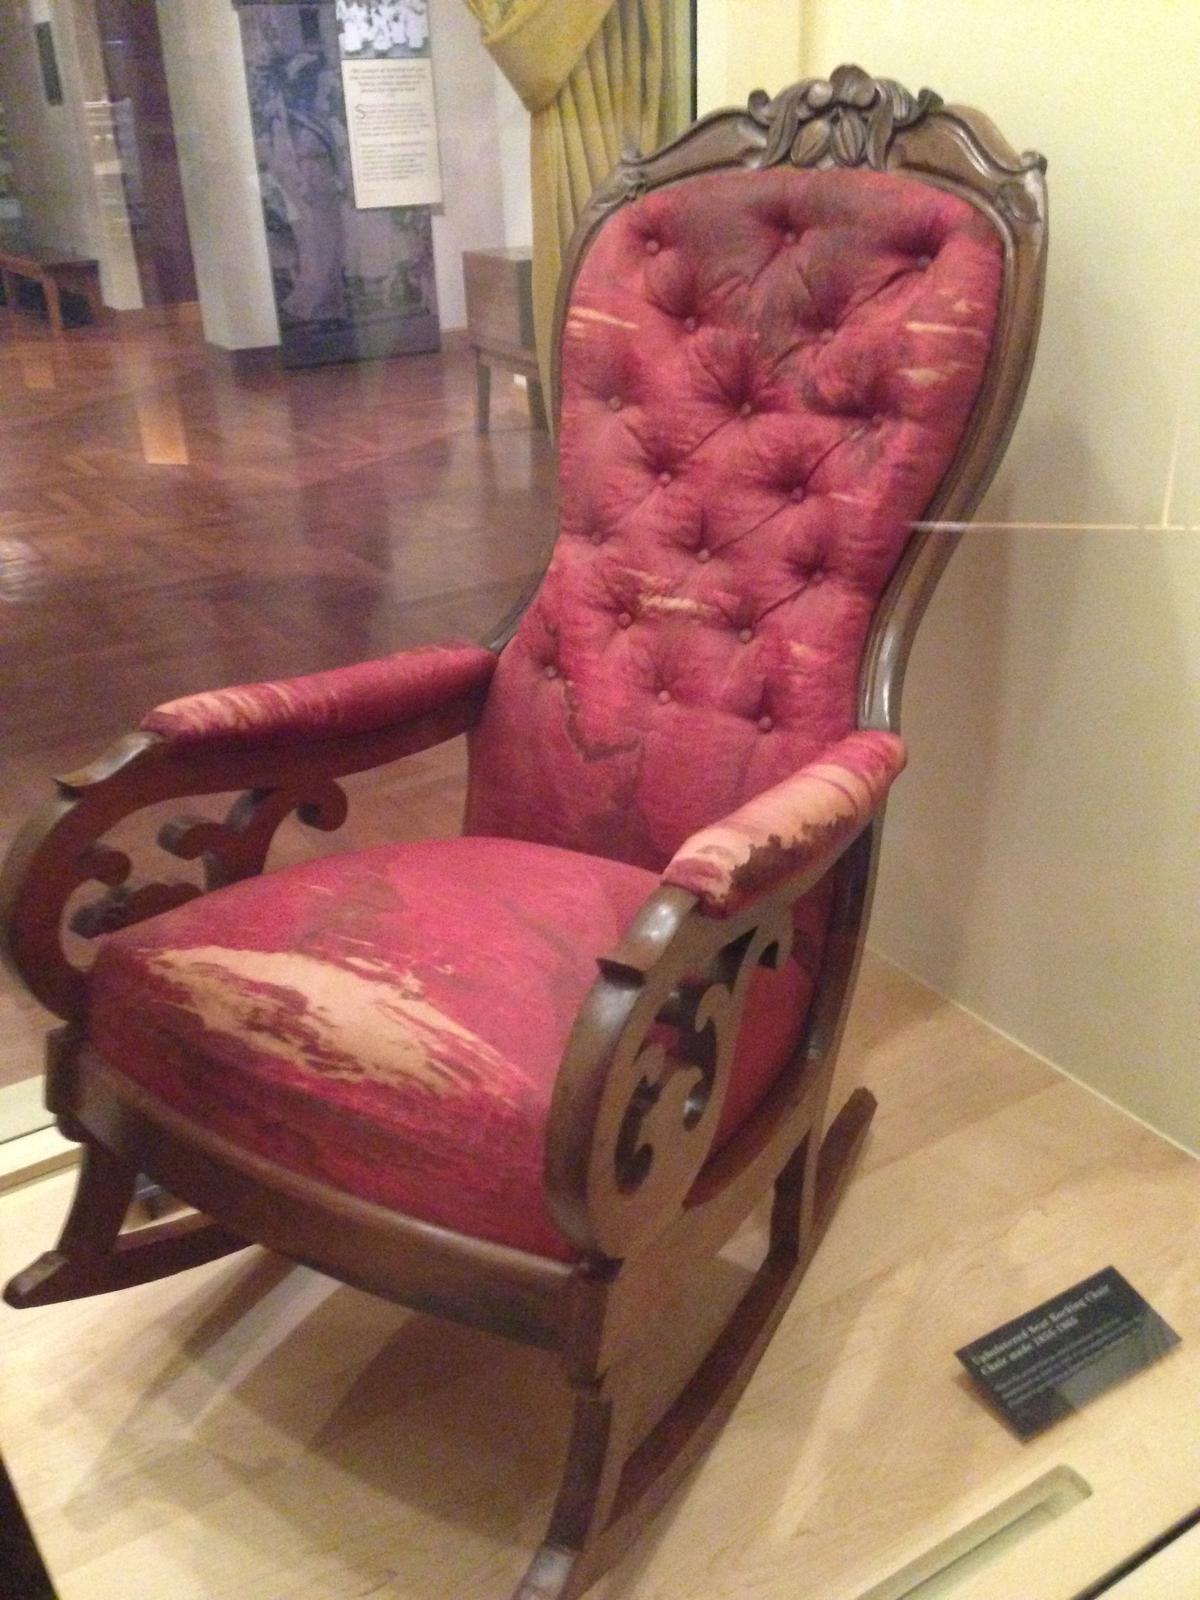 Lincoln's Bloody Chair